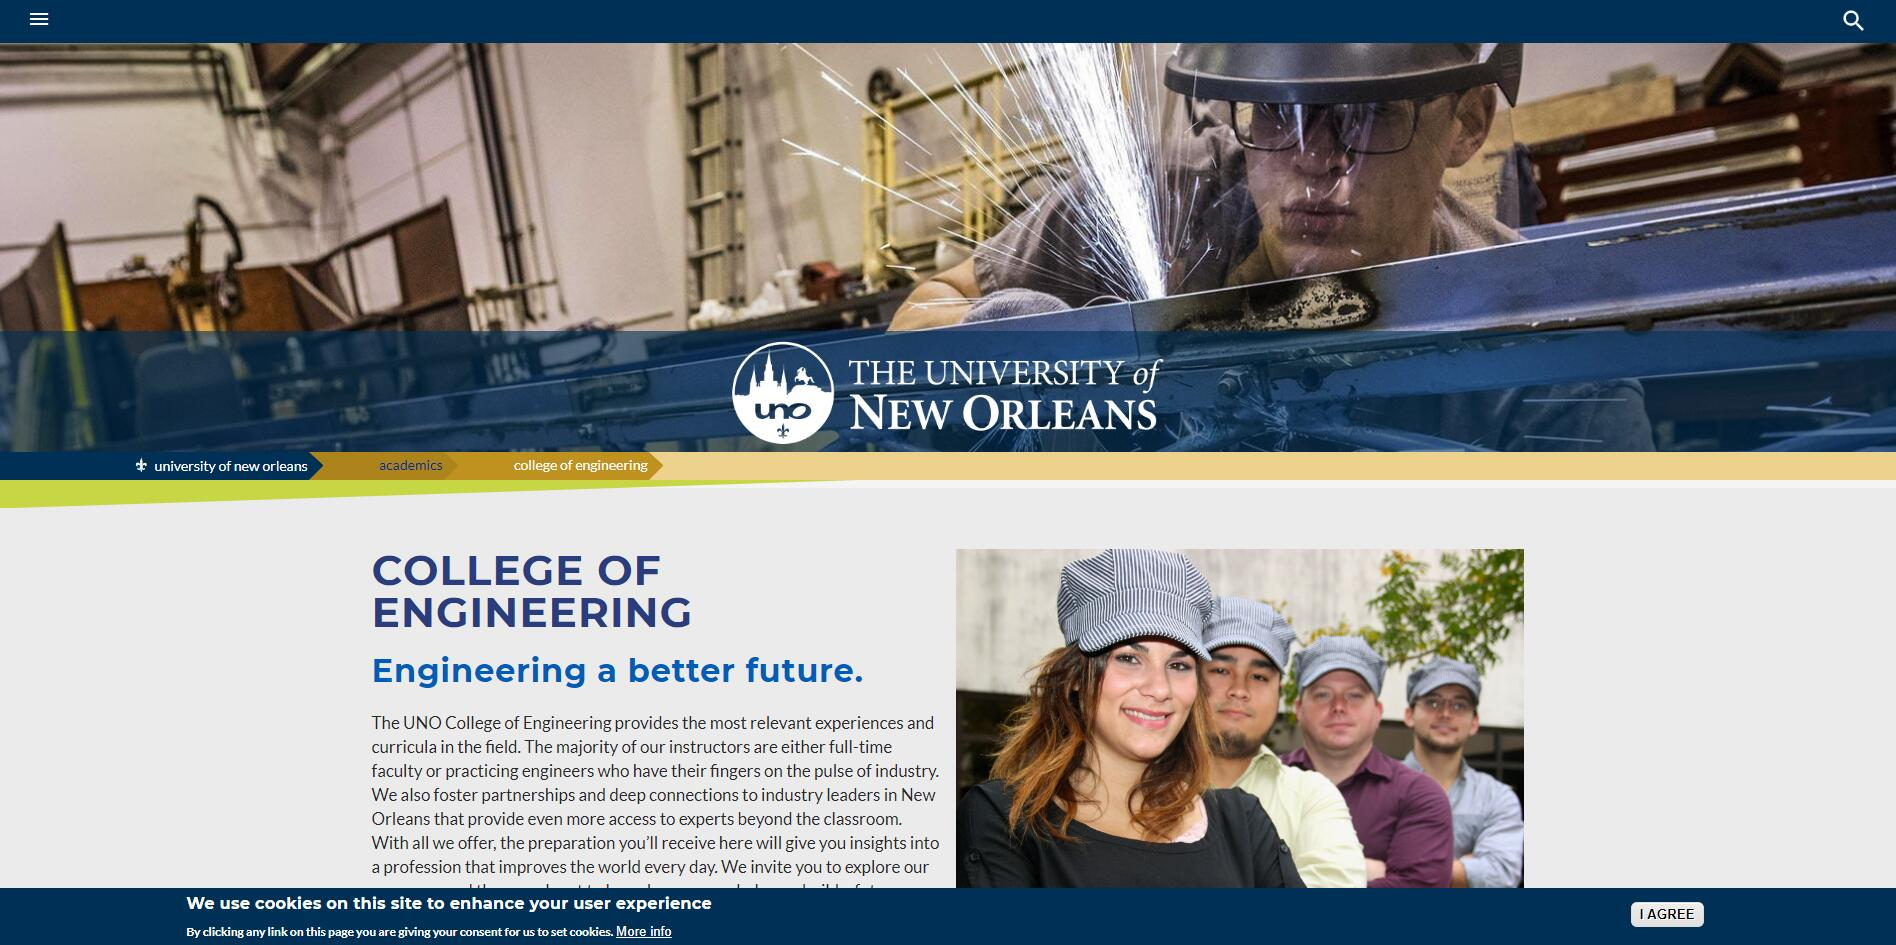 The College of Engineering at University of New Orleans